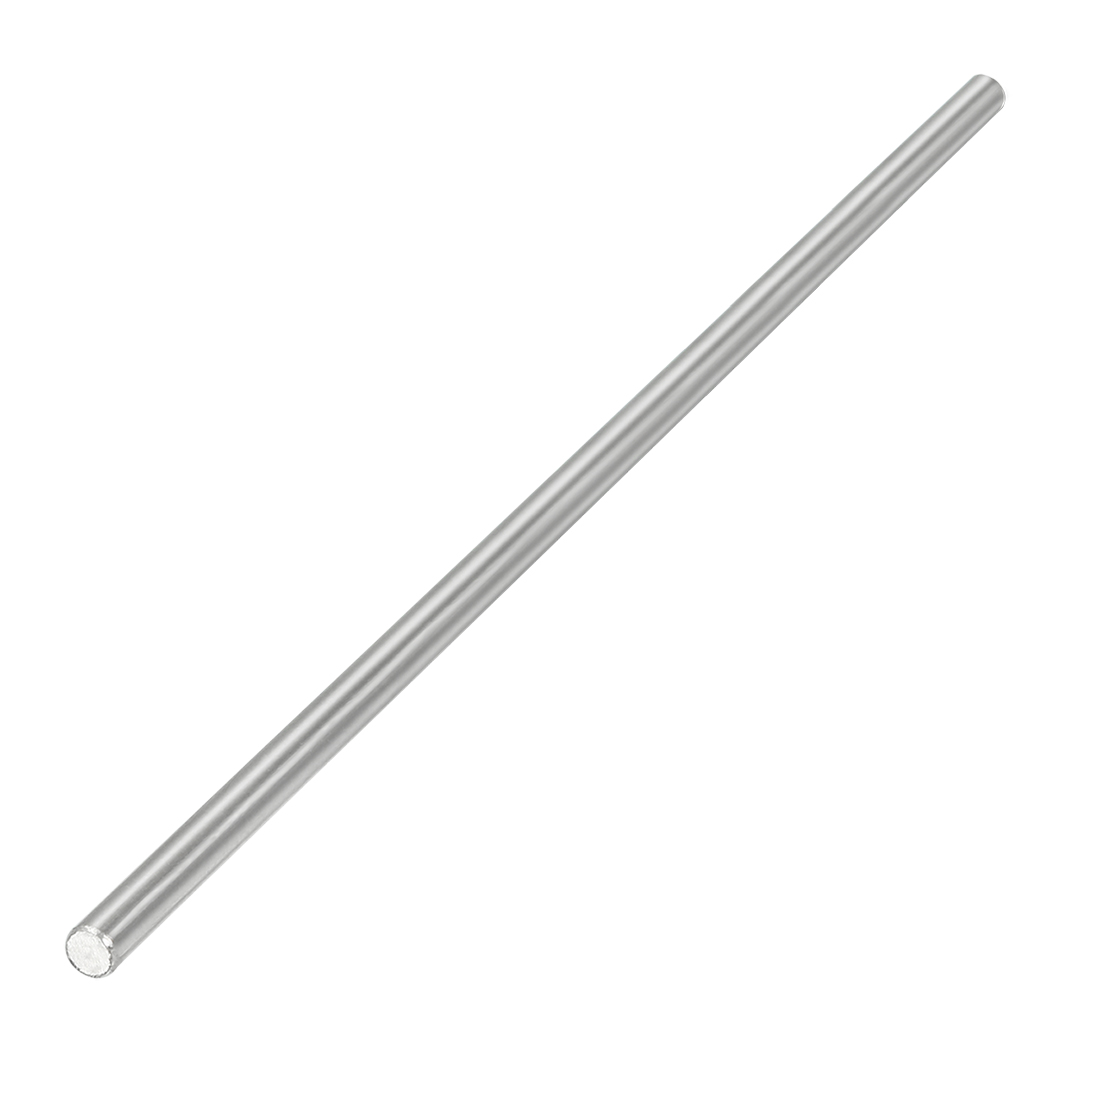 Round Shaft Rod Axle 304 Stainless Steel 2mm x 120mm for RC Toy Car